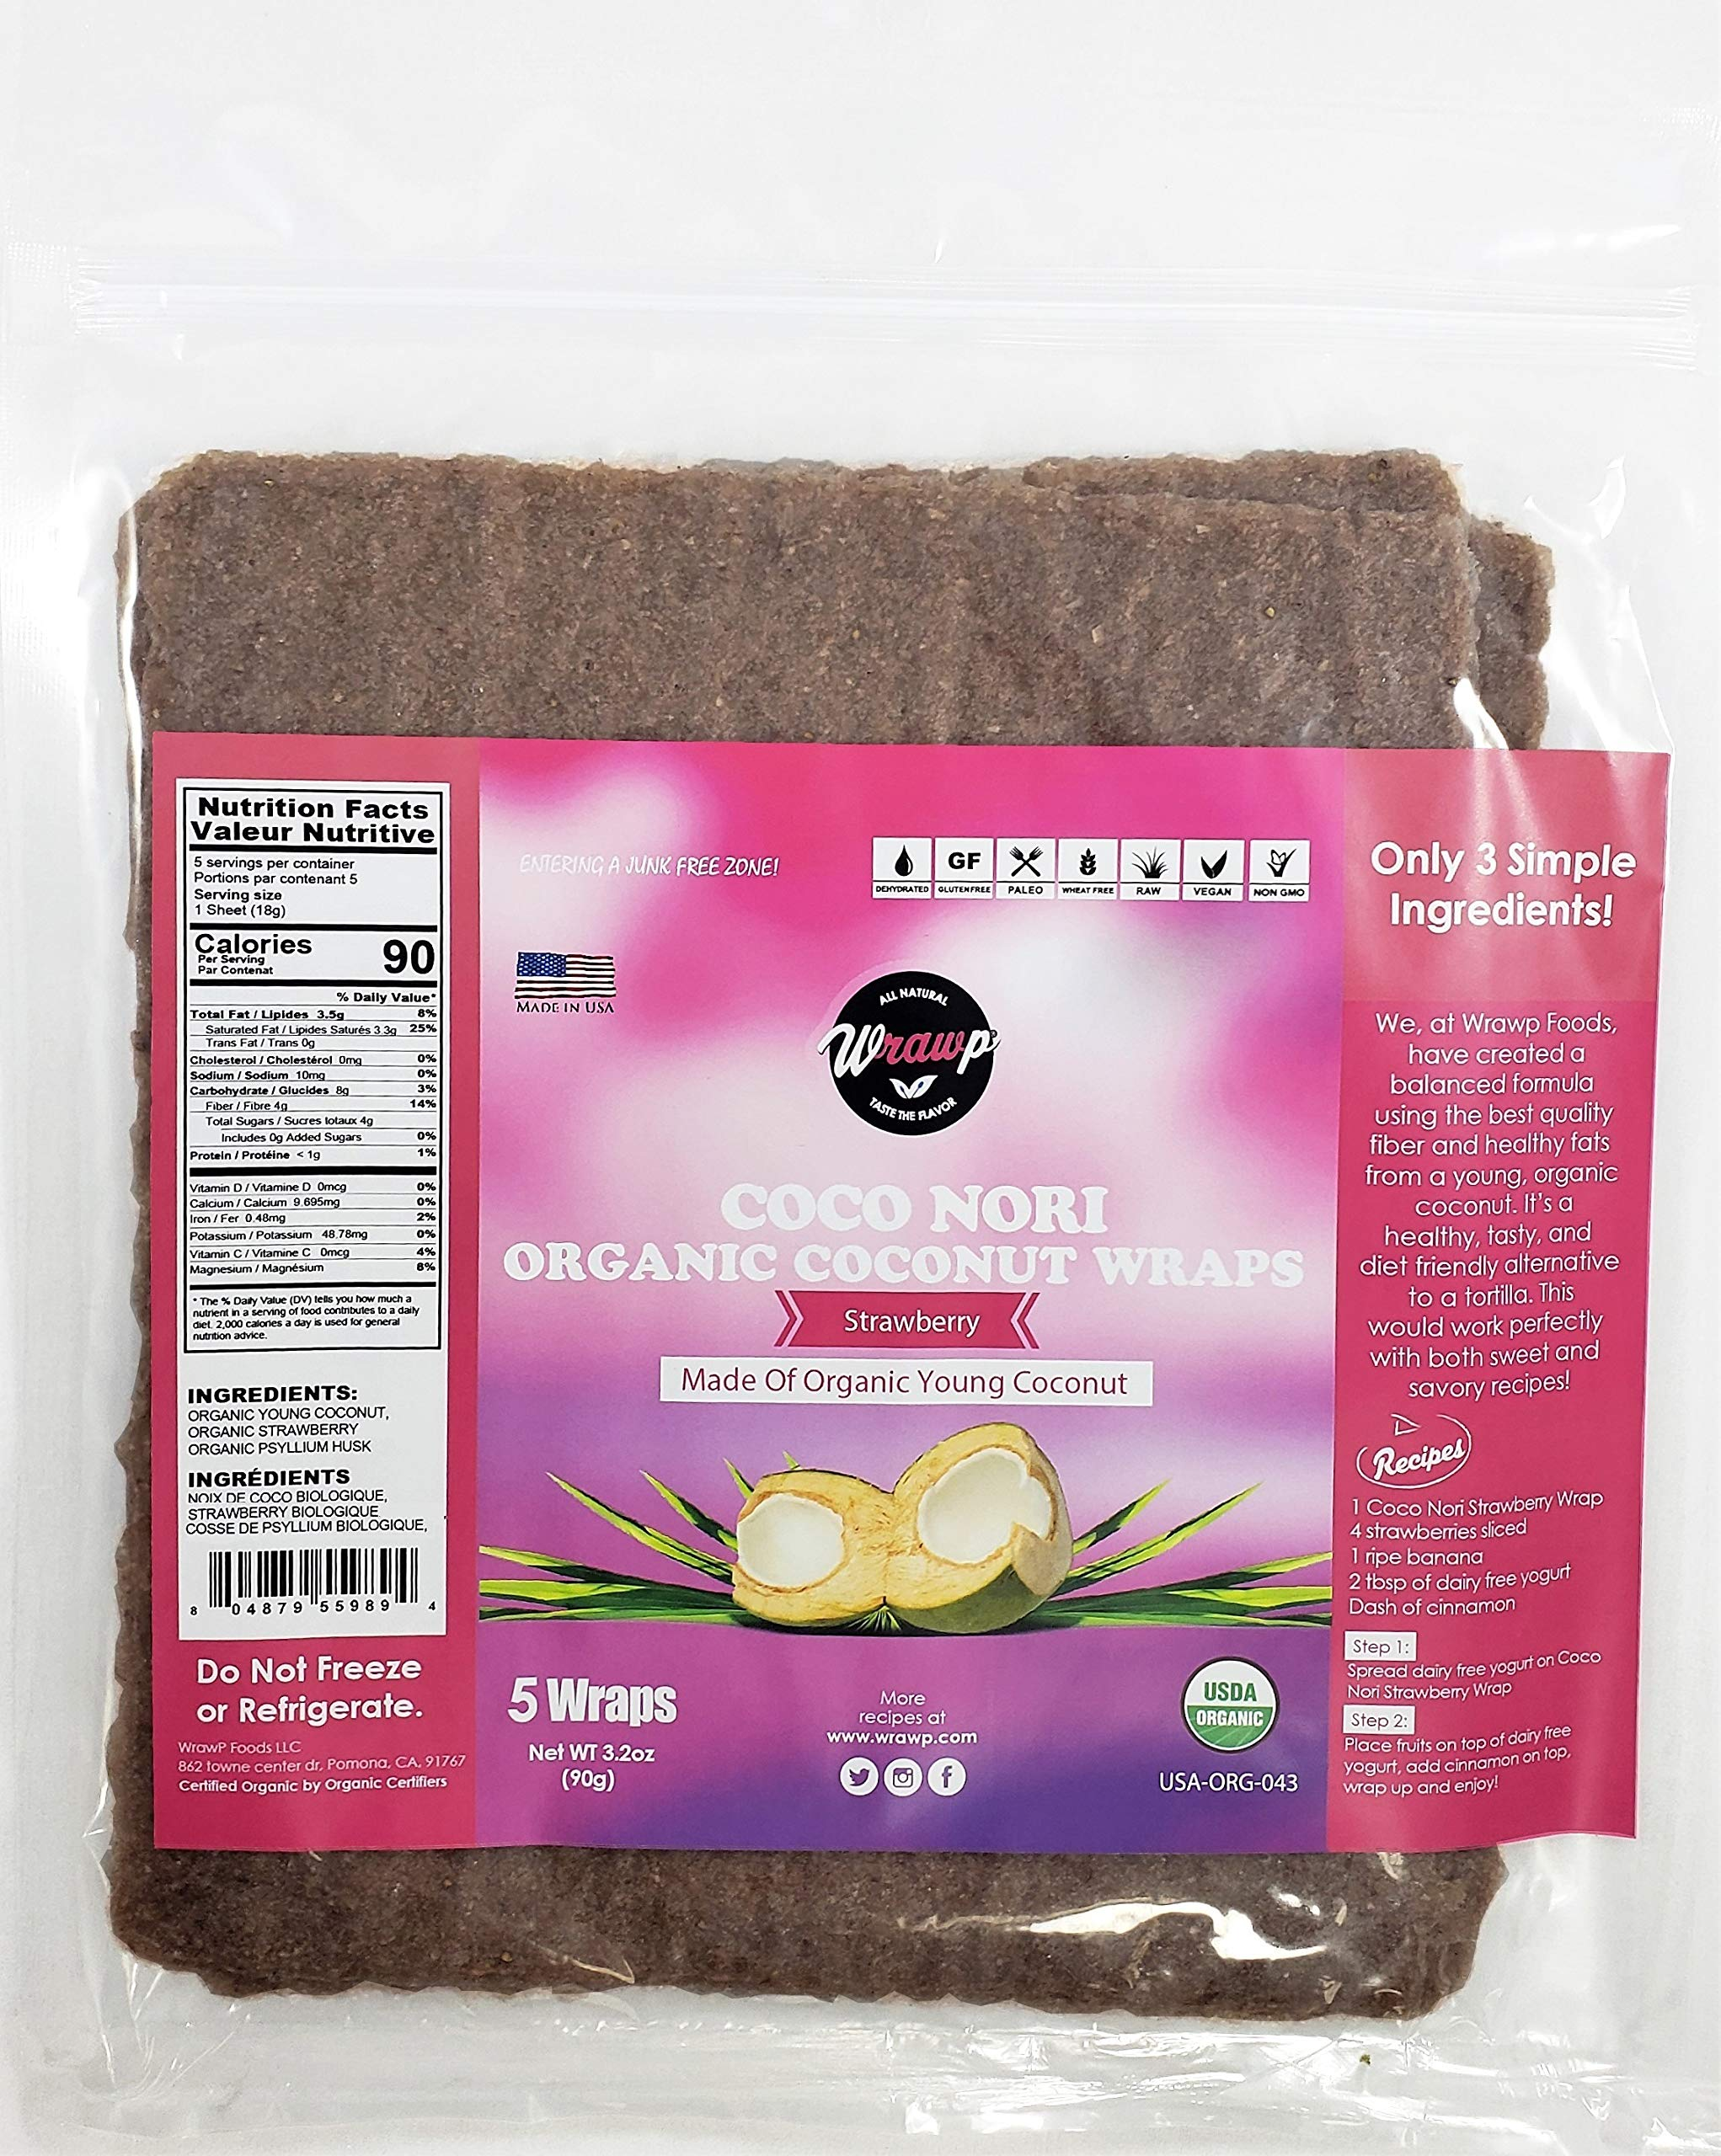 Organic Coconut Wraps, 6 Pack Coco Nori Strawberry (Raw, Vegan, Paleo, Gluten Free wraps) Made from young Thai Coconuts